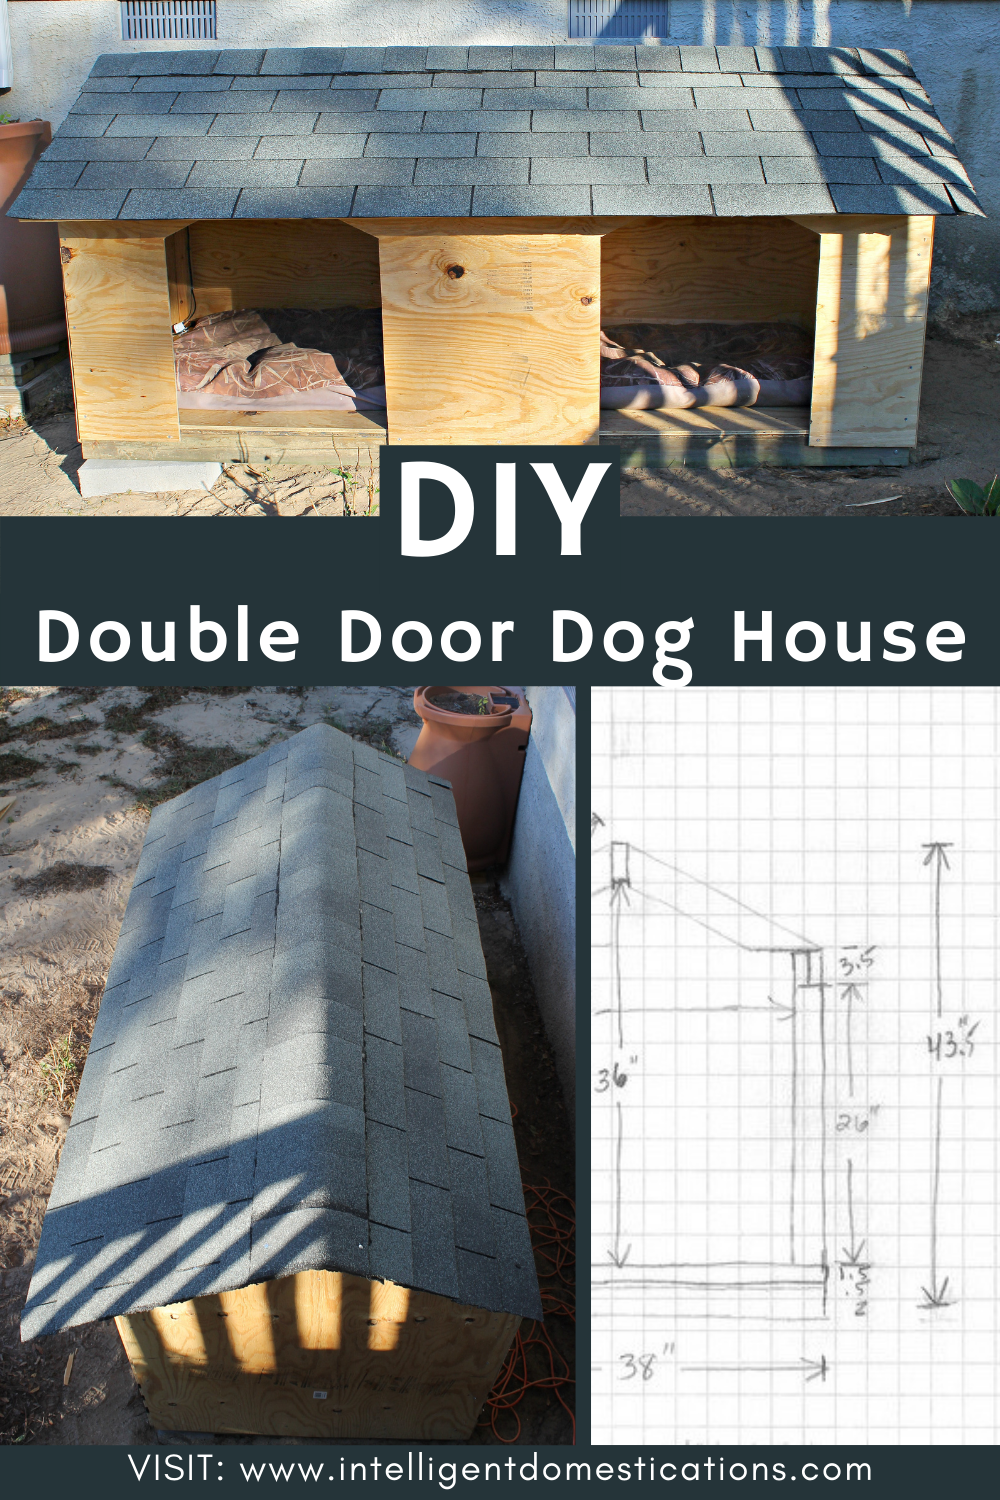 Pictures of a Double Door Dog House